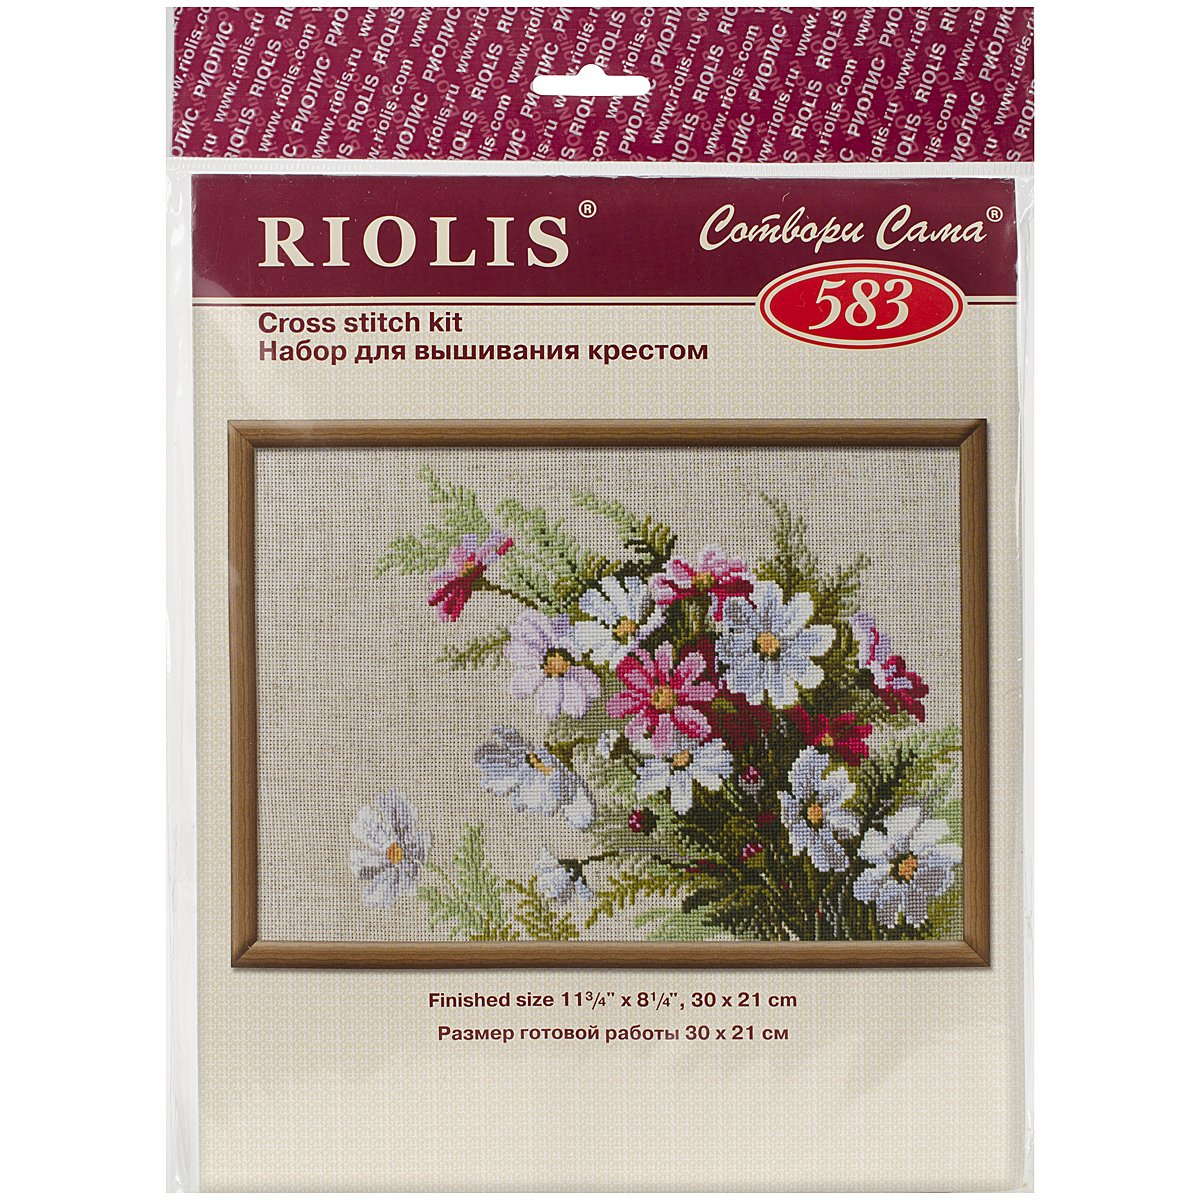 RIOLIS Cosmom Counted Cross Stitch Kit 8.25X11.75-(15 Count)